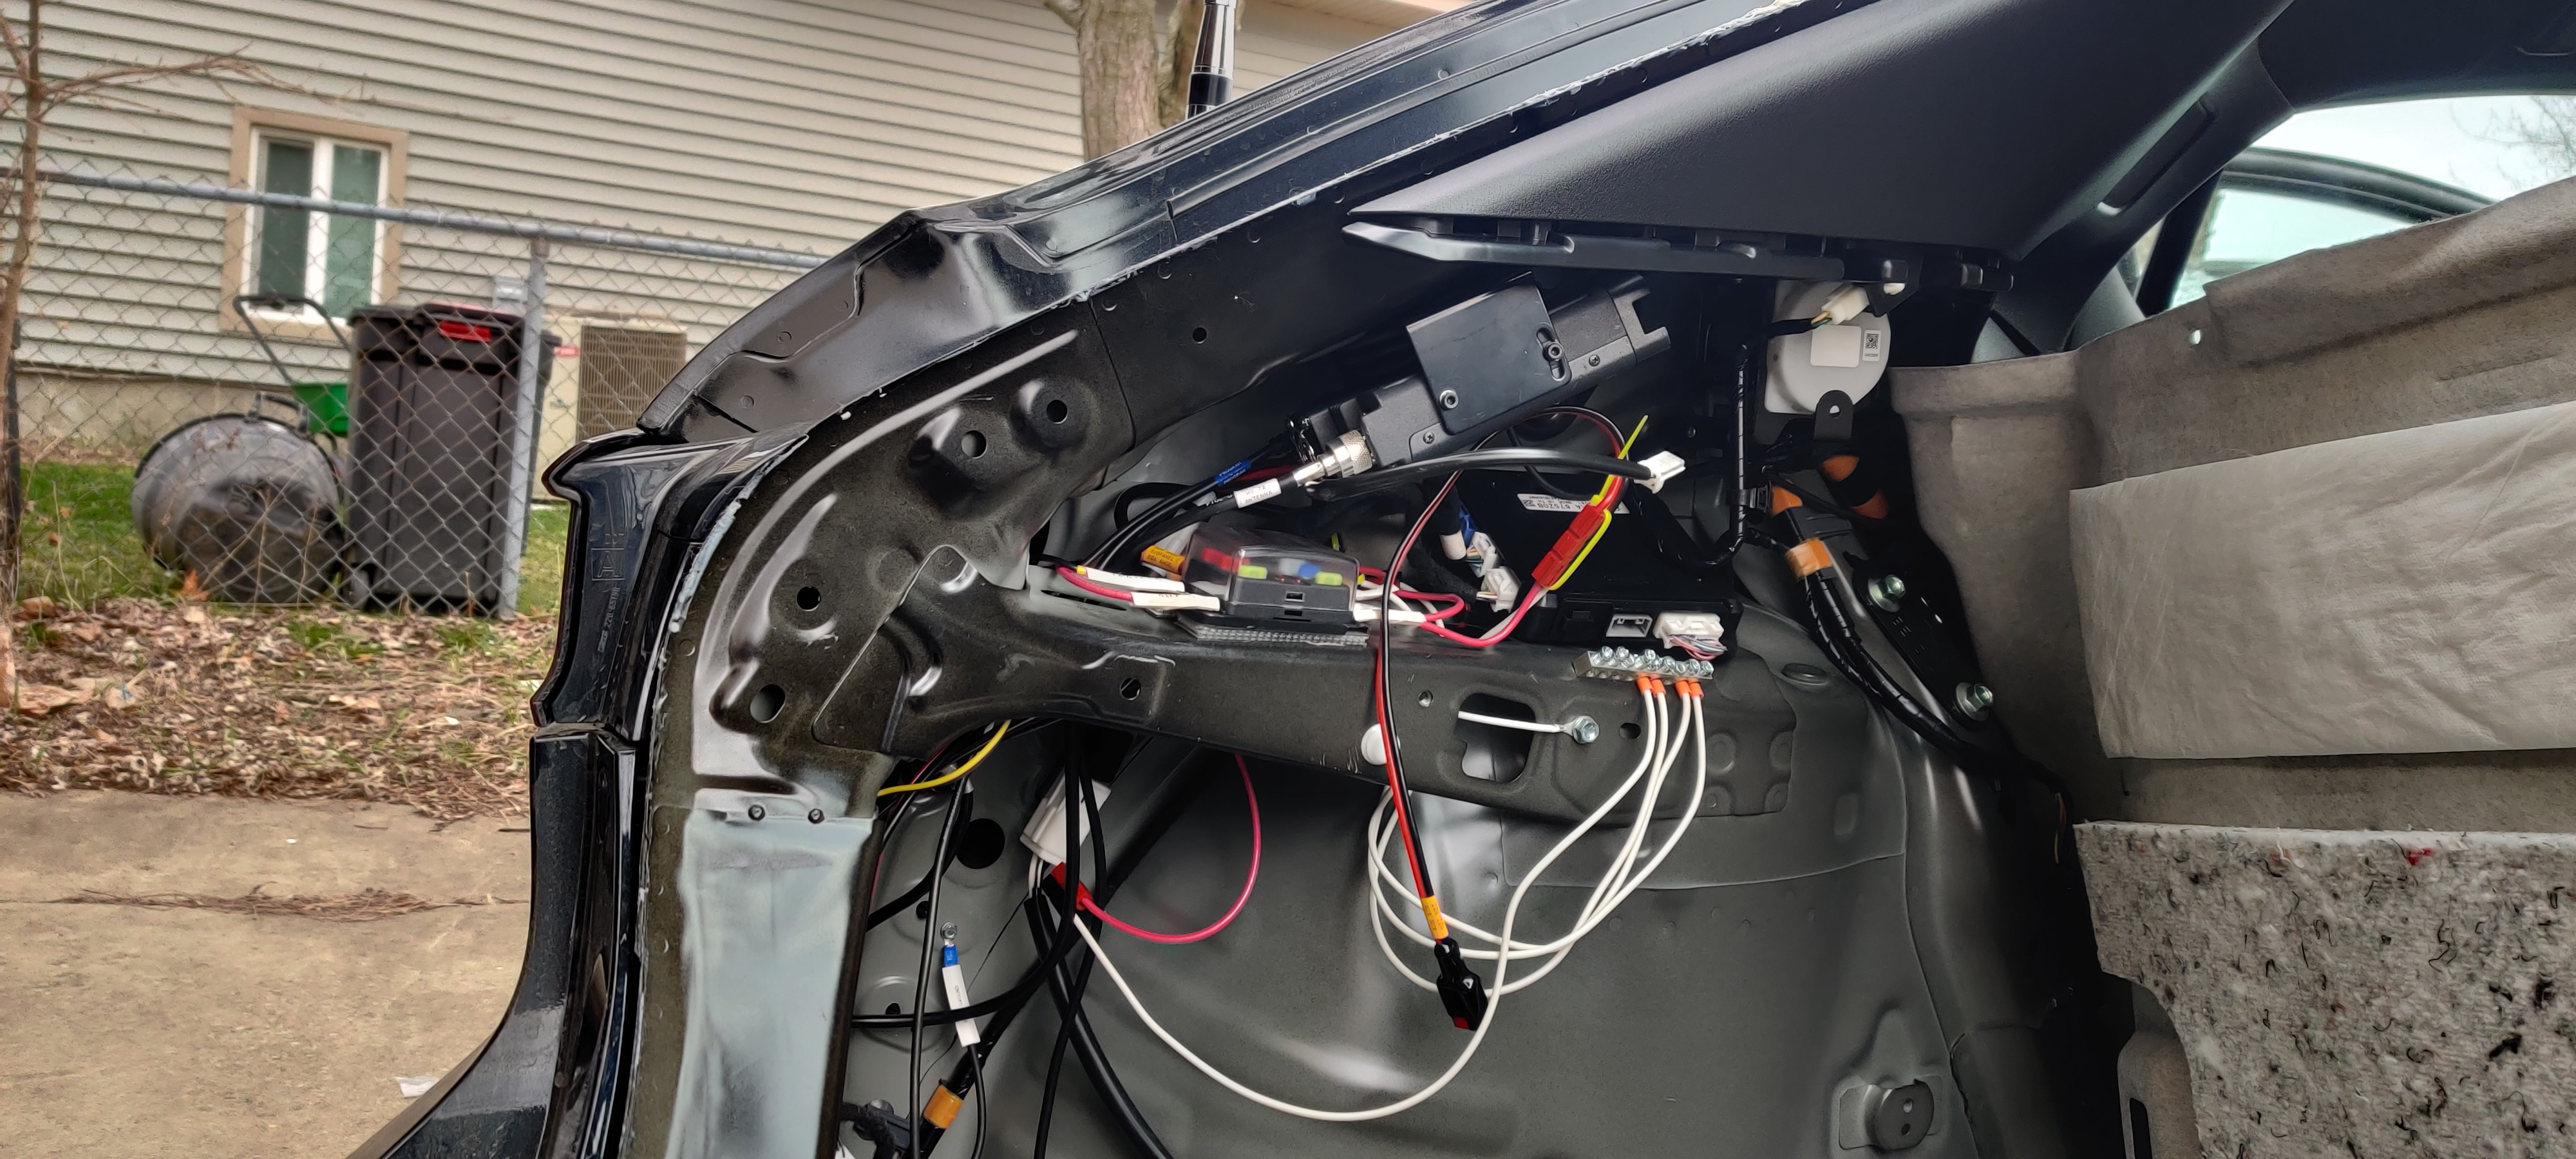 Completed installation, with coax labeled and terminated. The  backing plate for the mount is approximately behind the triangular gap formed by the FT-8900R and the OEM module. All access was through a narrow slit aft of the inner frame member, shown with a large knockout and the Breedlove grounding wire.